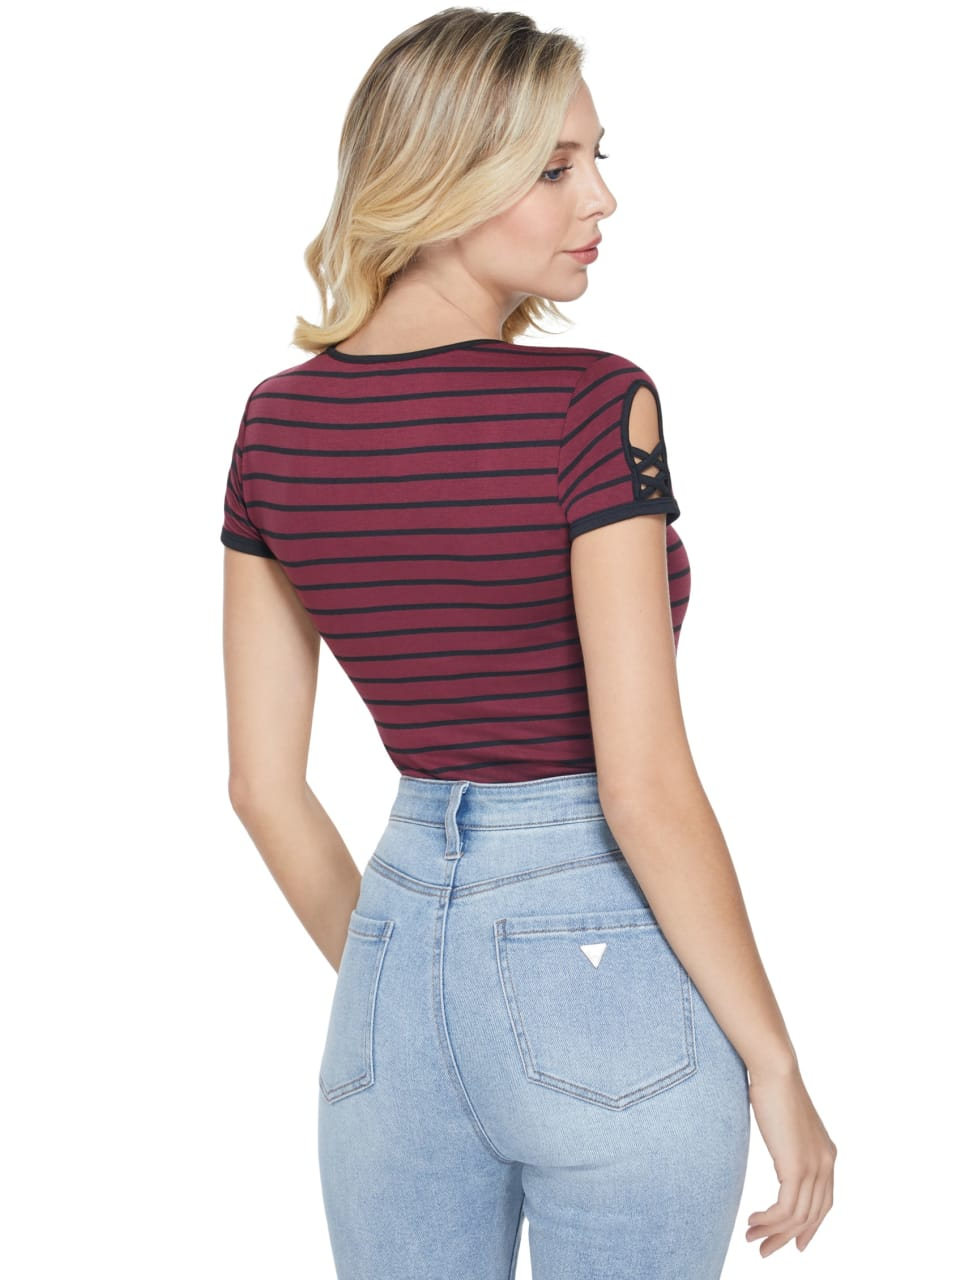 GUESS-Factory-Women-039-s-Nico-Striped-Cutout-Scoop-Neck-Short-Sleeve-Tee thumbnail 13